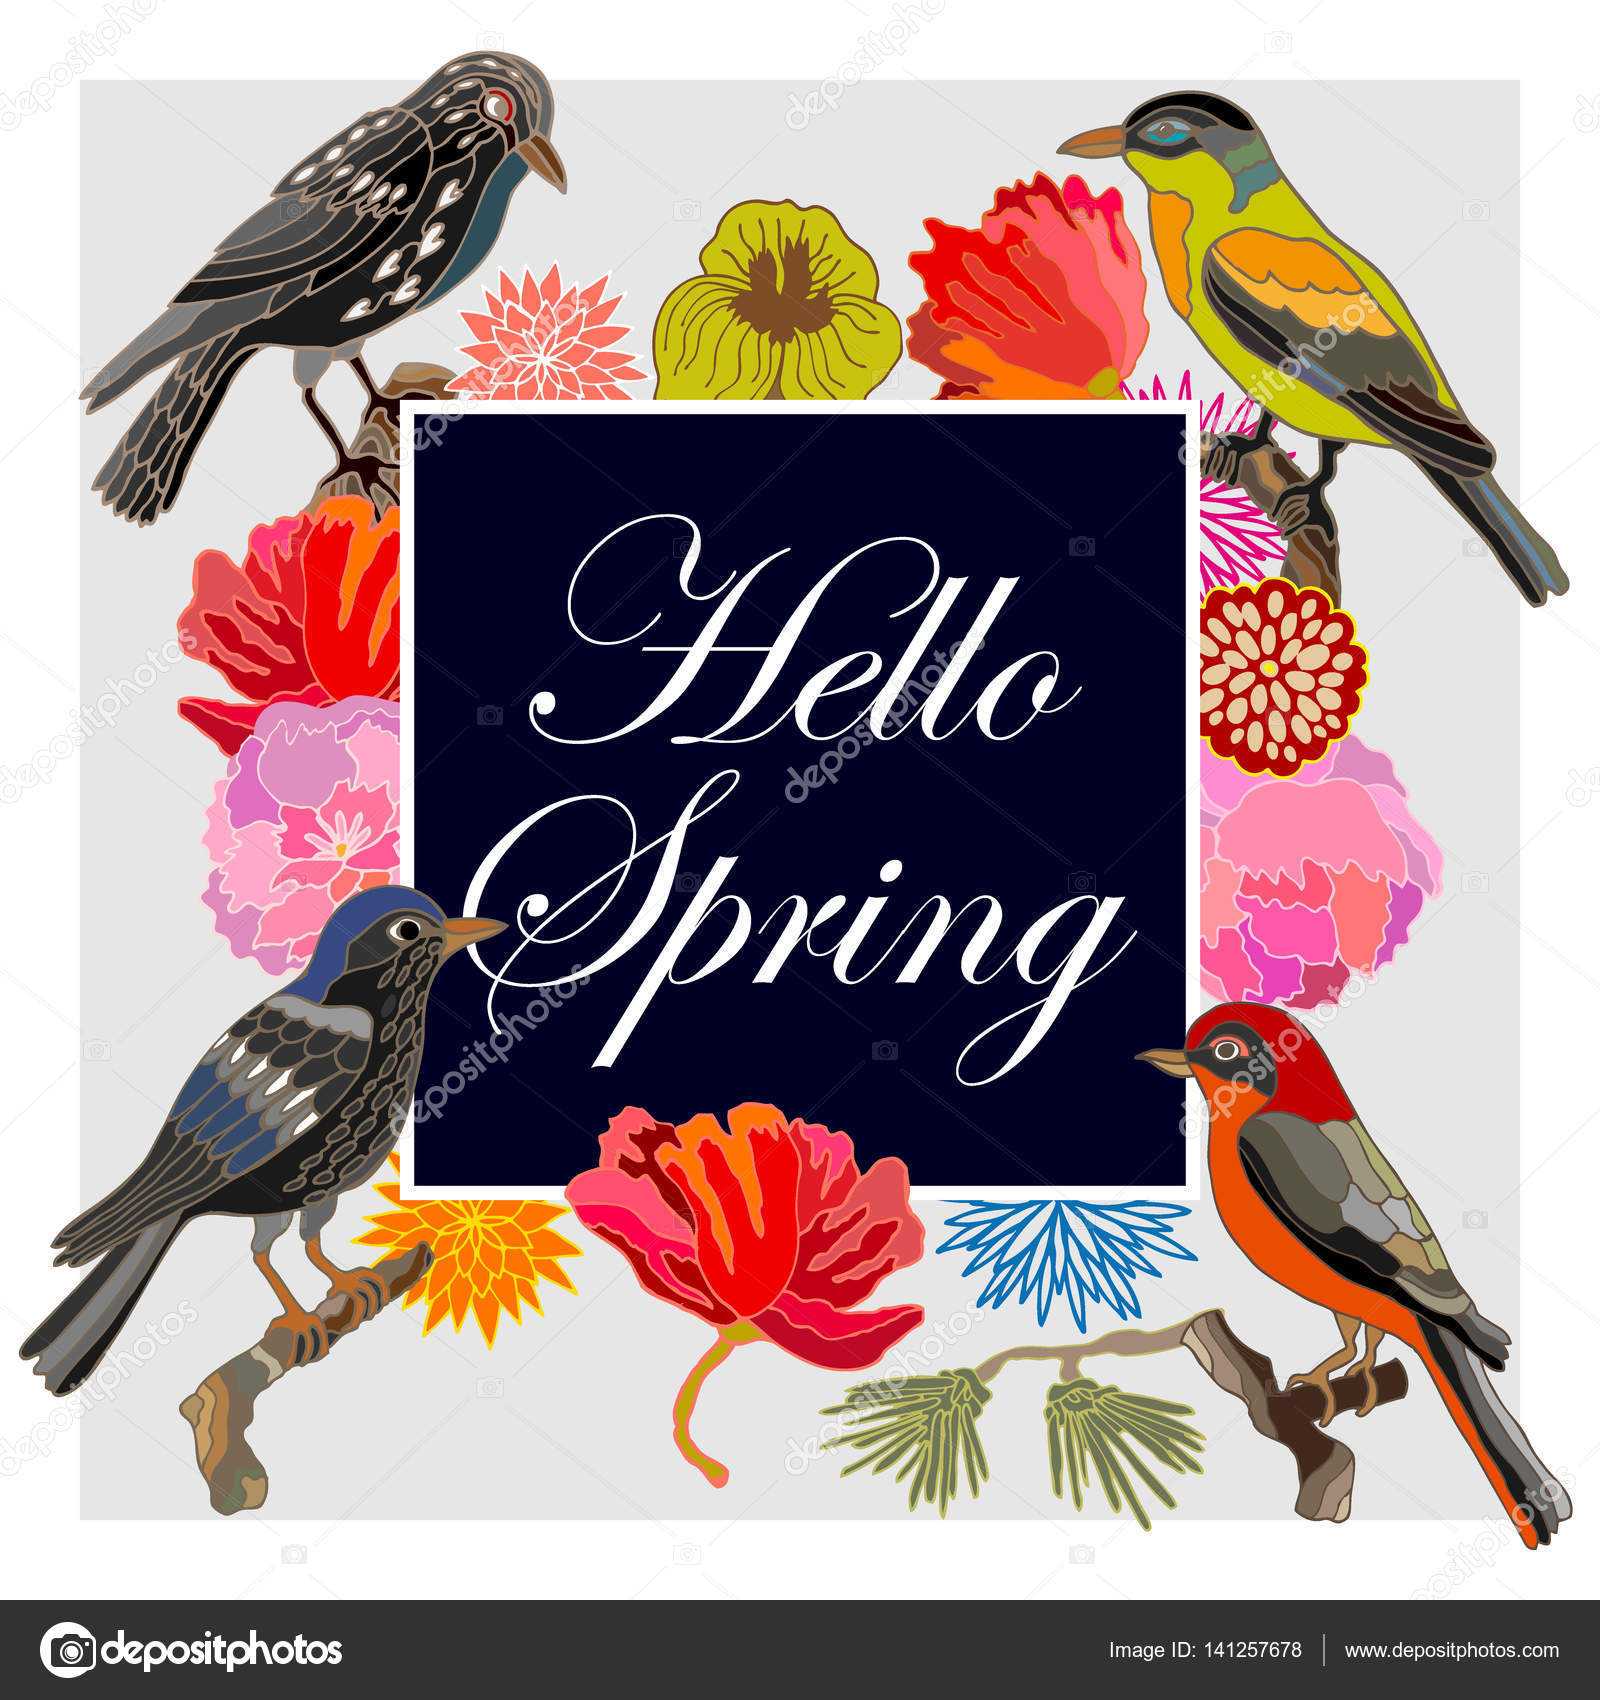 Hello Spring Vintage Card With Fantasy Birds And Flowers Stock Vector